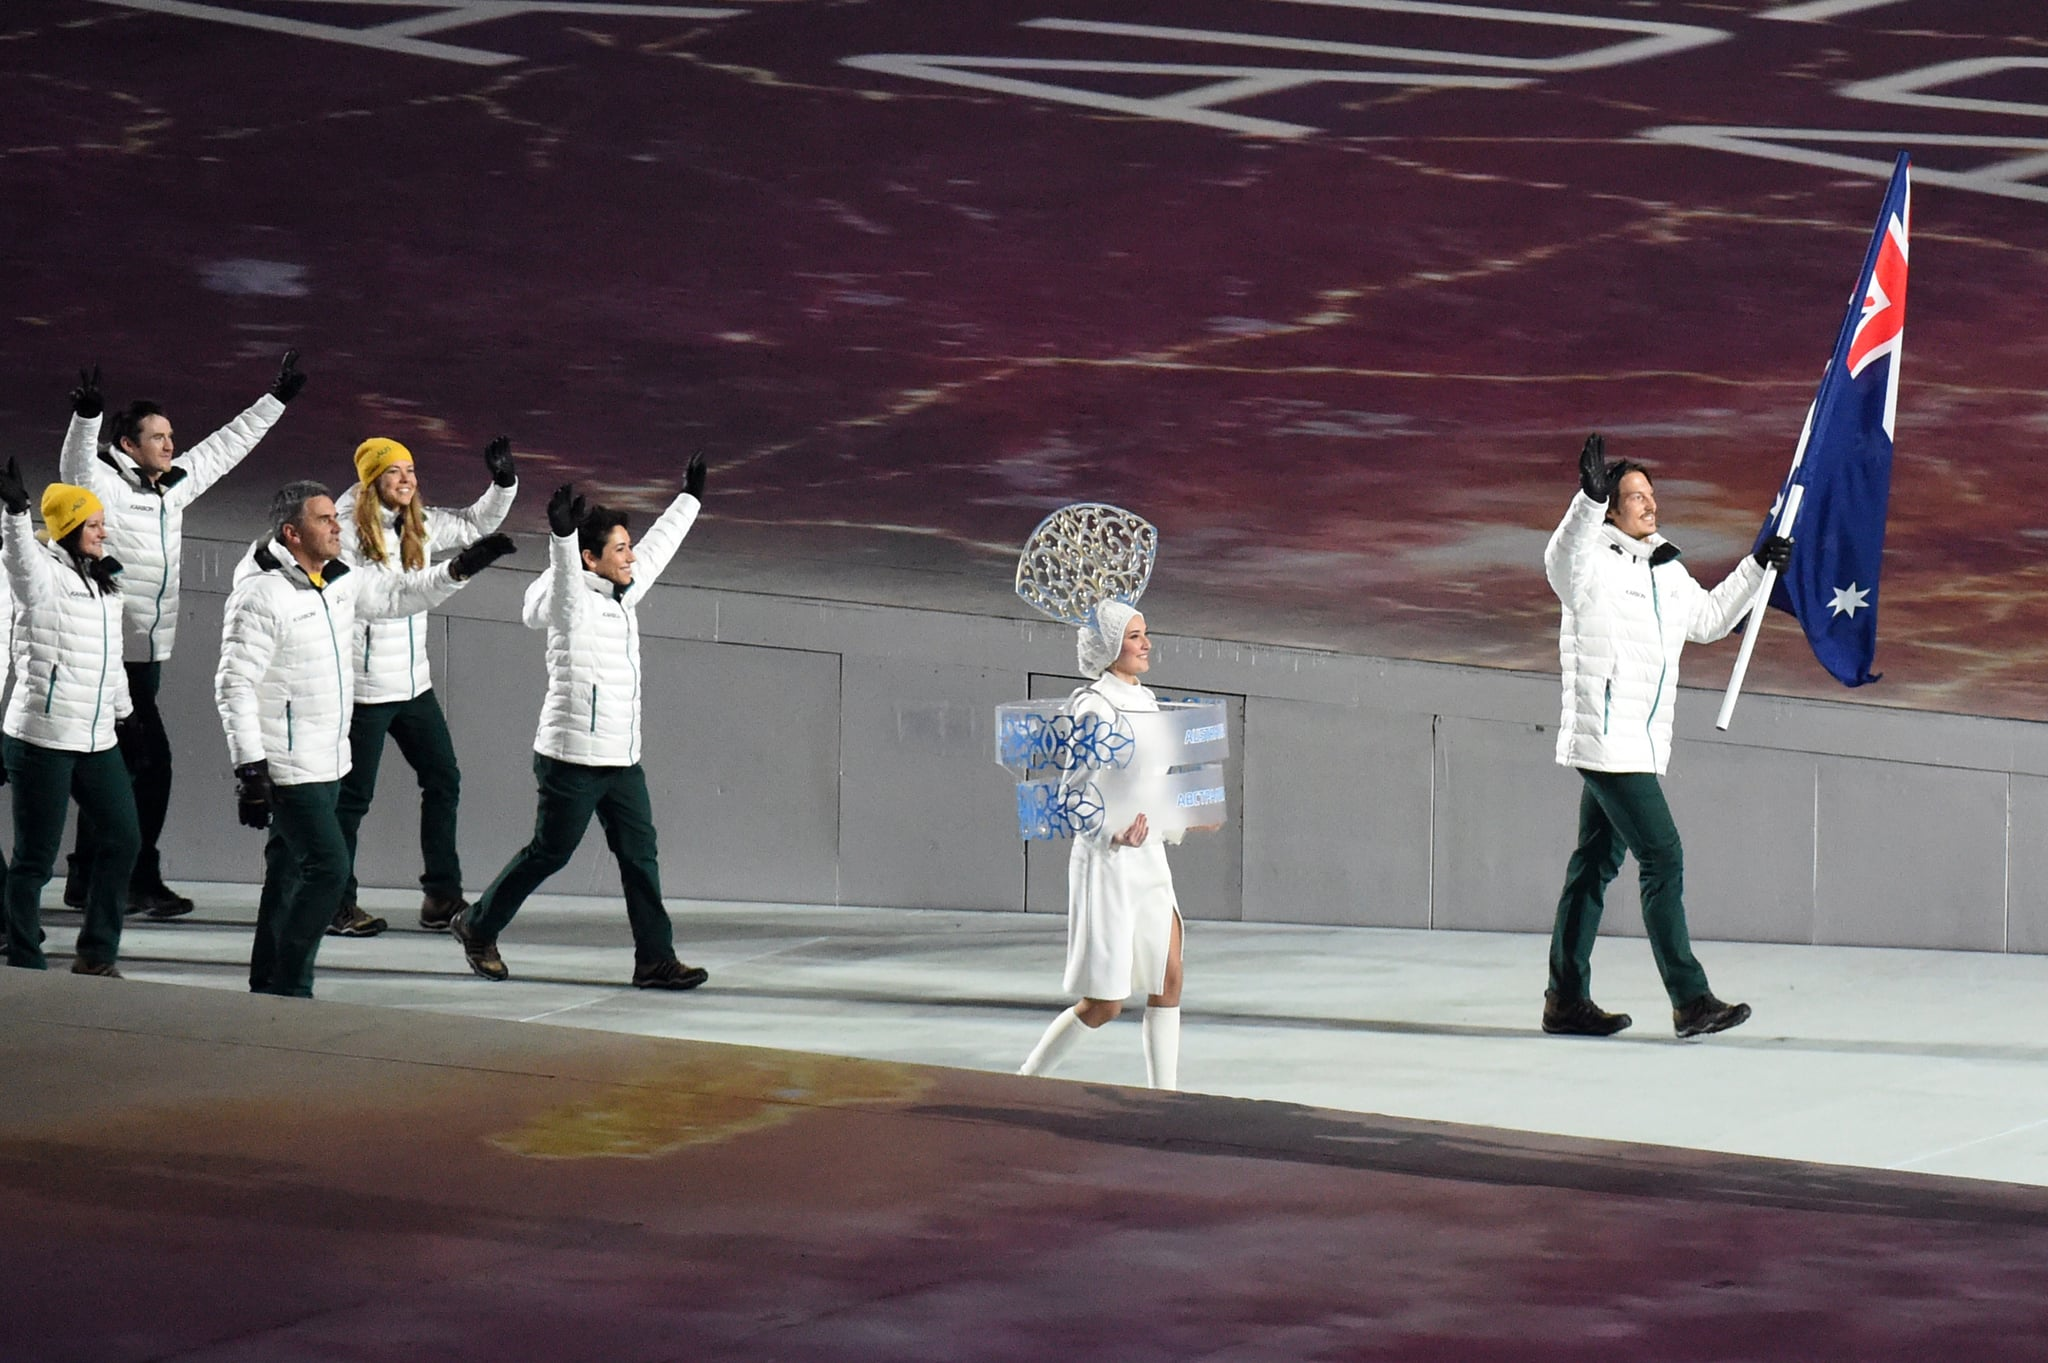 Is This the Opening Ceremony or The Hunger Games?